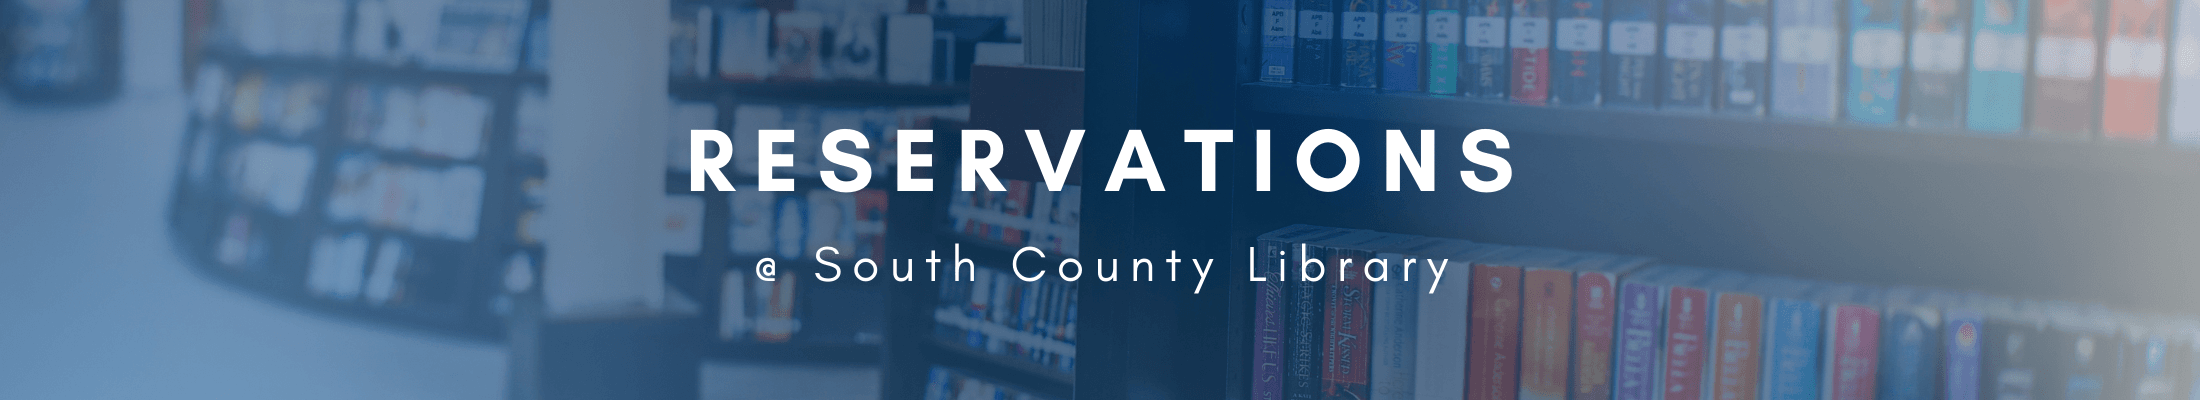 Reservations at South County Library